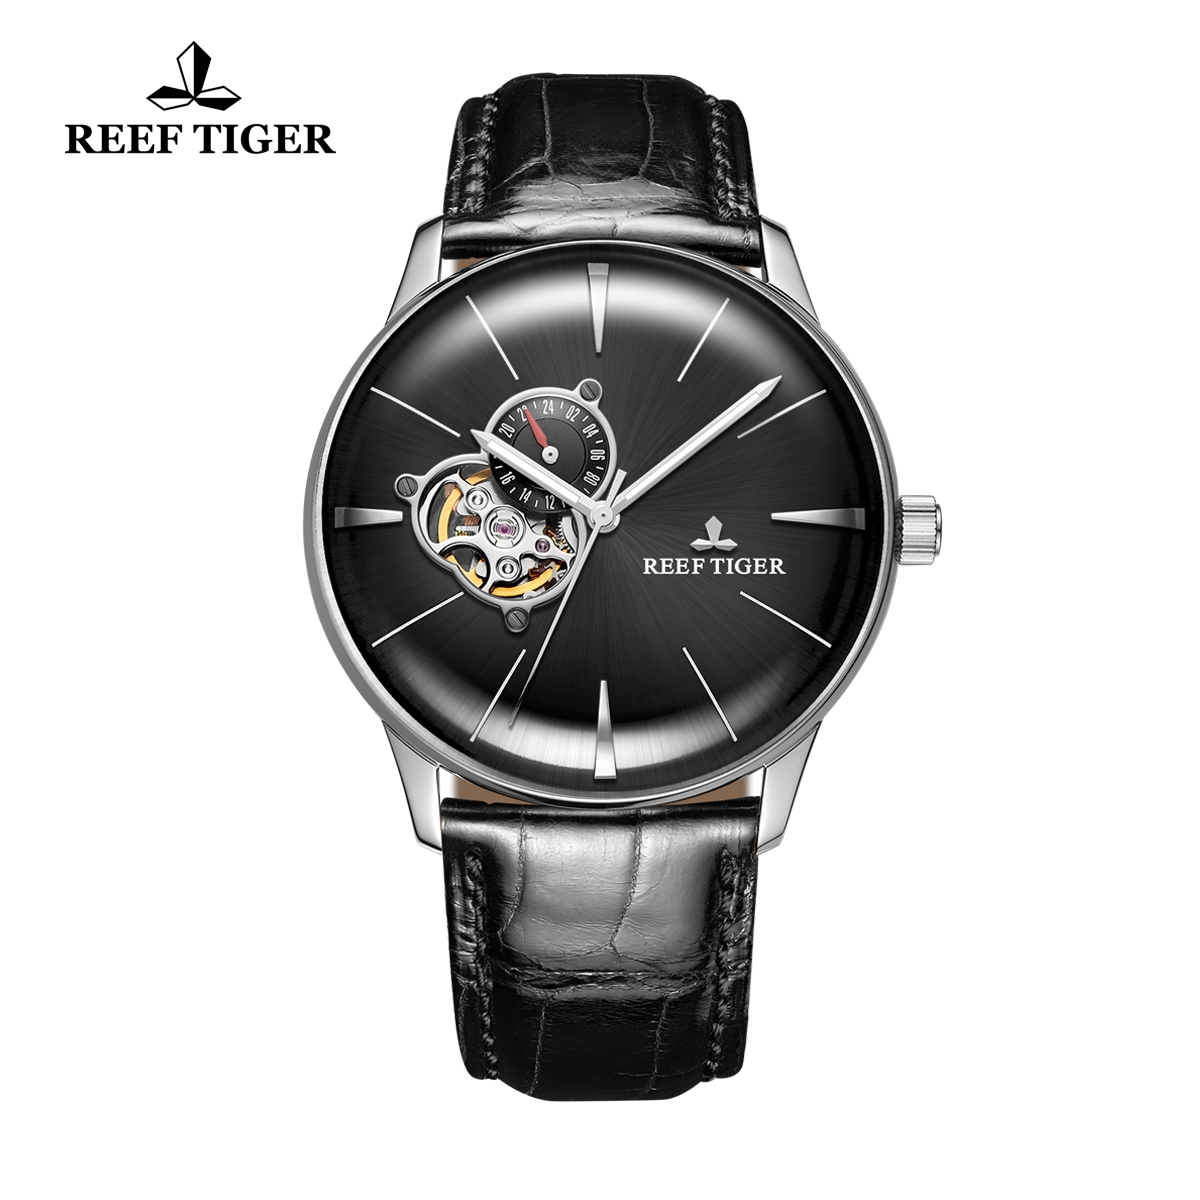 Reef Tiger Classic Glory Men's Automatic Watch Black Dial Calfskin Leather Strap RGA8239-YBB